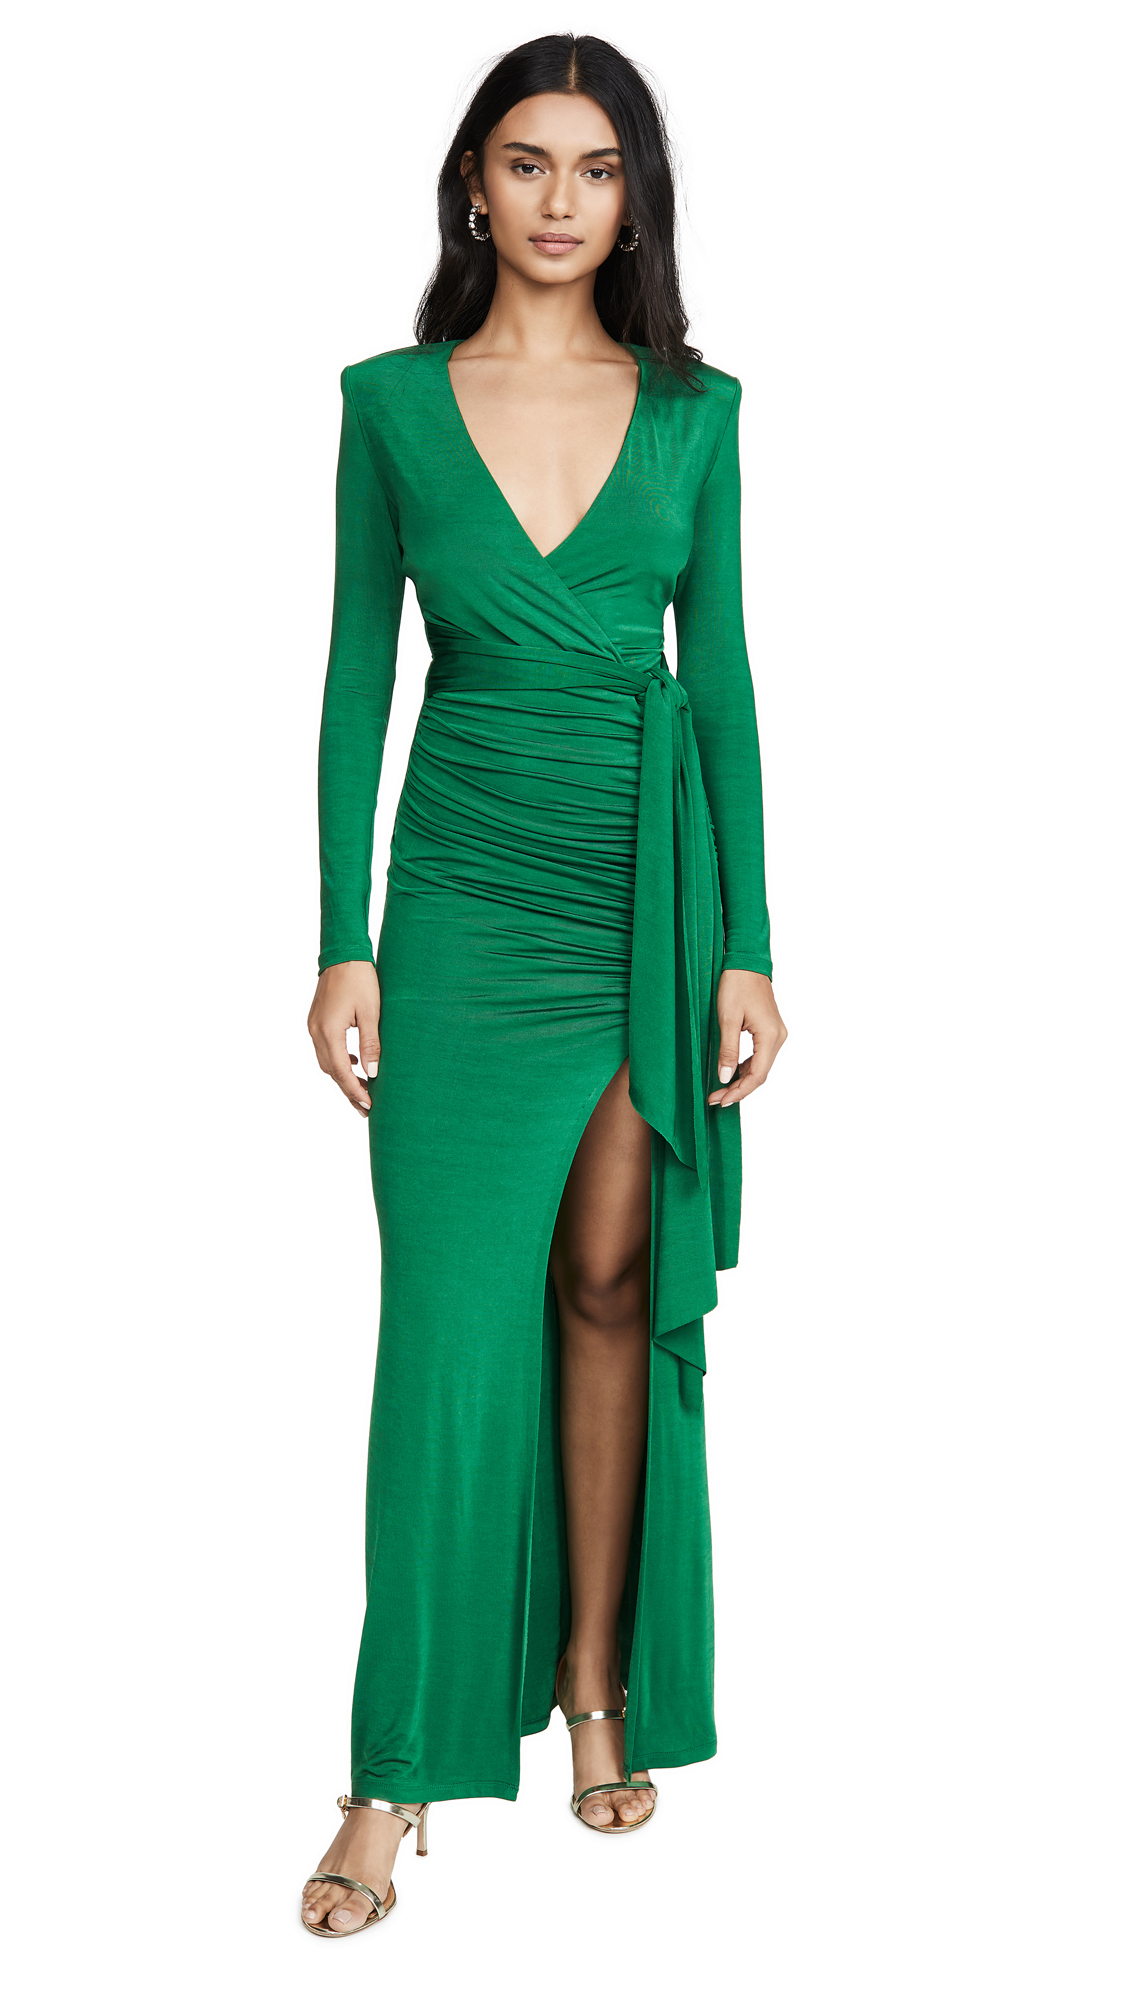 Buy alice + olivia Kyra Deep V Drapey Maxi Dress online beautiful alice + olivia Dresses, Strapless